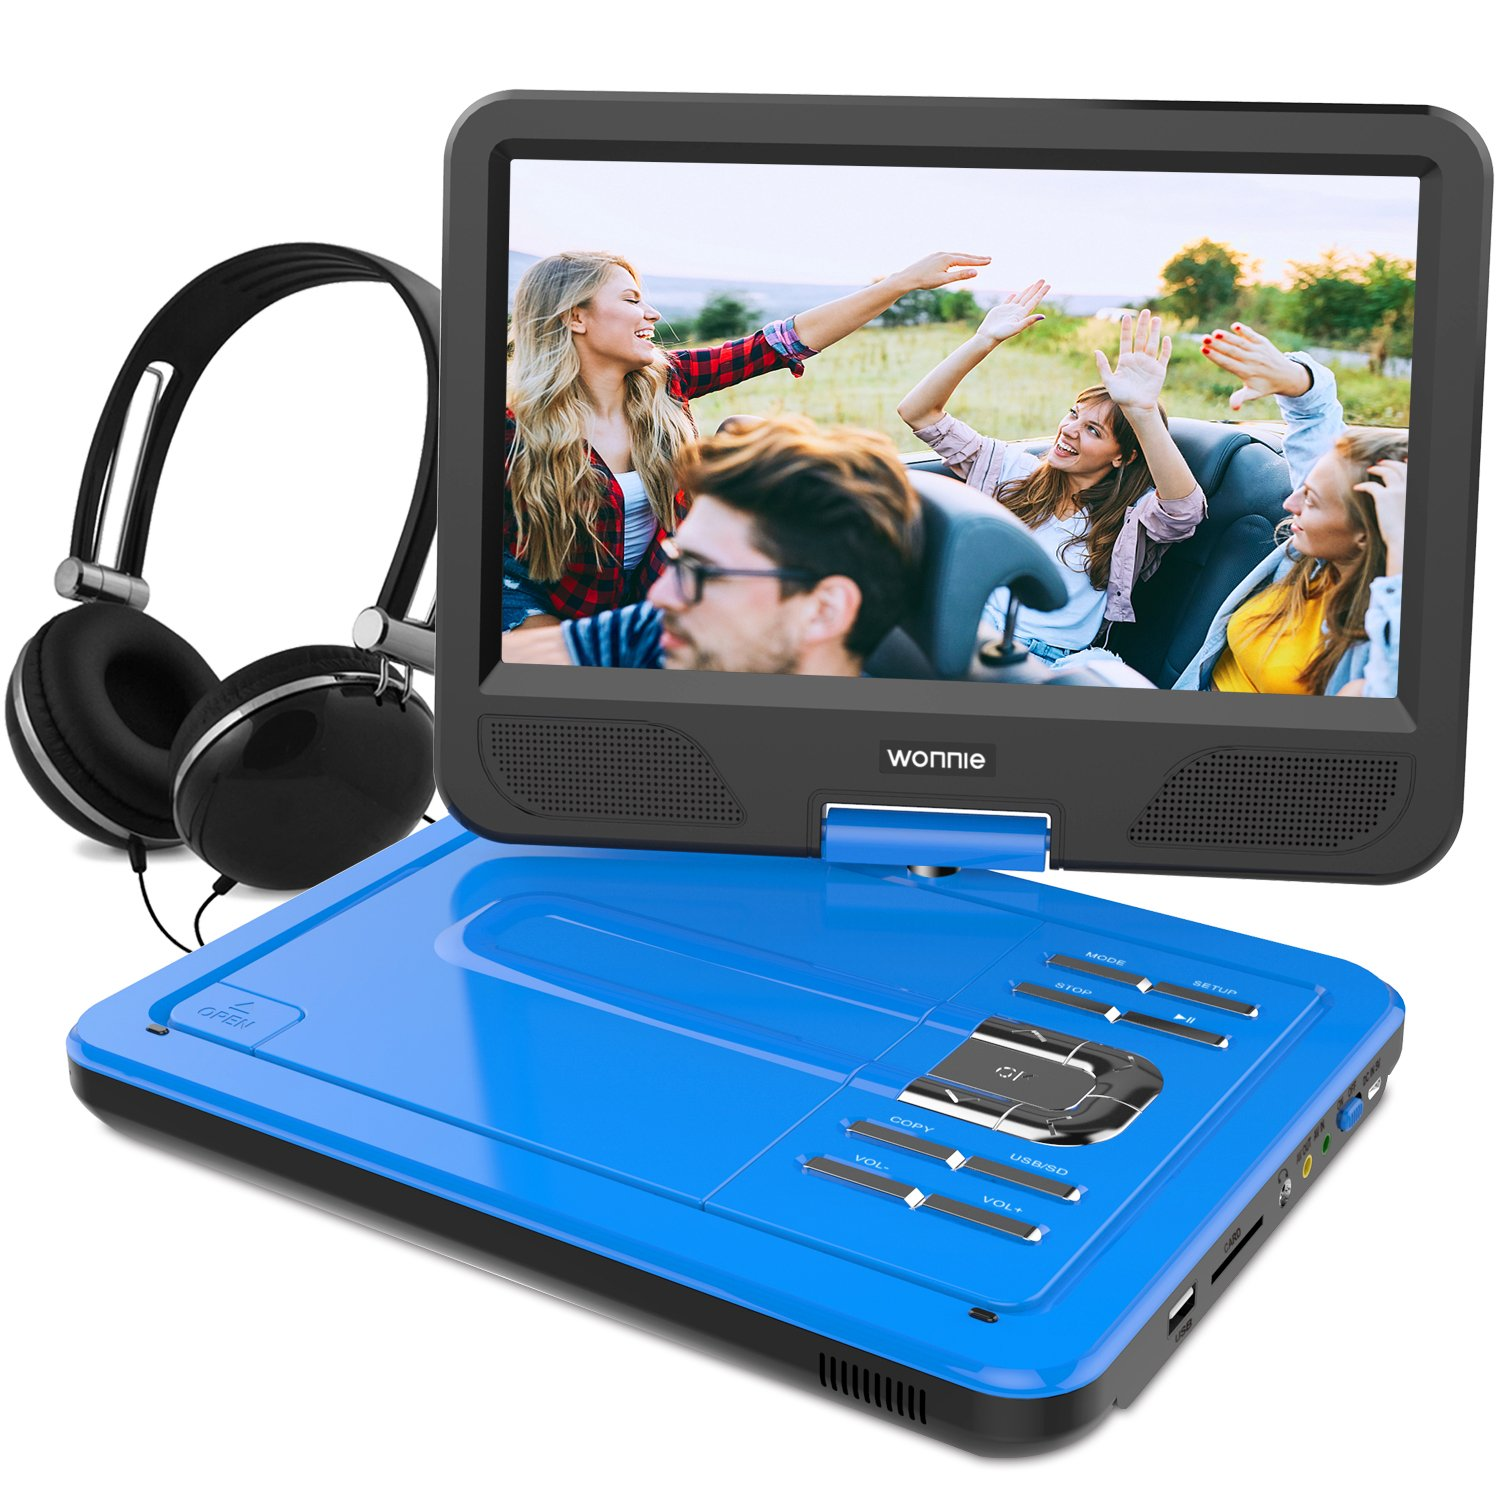 WONNIE 10.5 Inch Portable DVD Player with Swivel Screen, USB / SD Slot Built in 4 Hours Rechargeable Battery (BLUE) by WONNIE